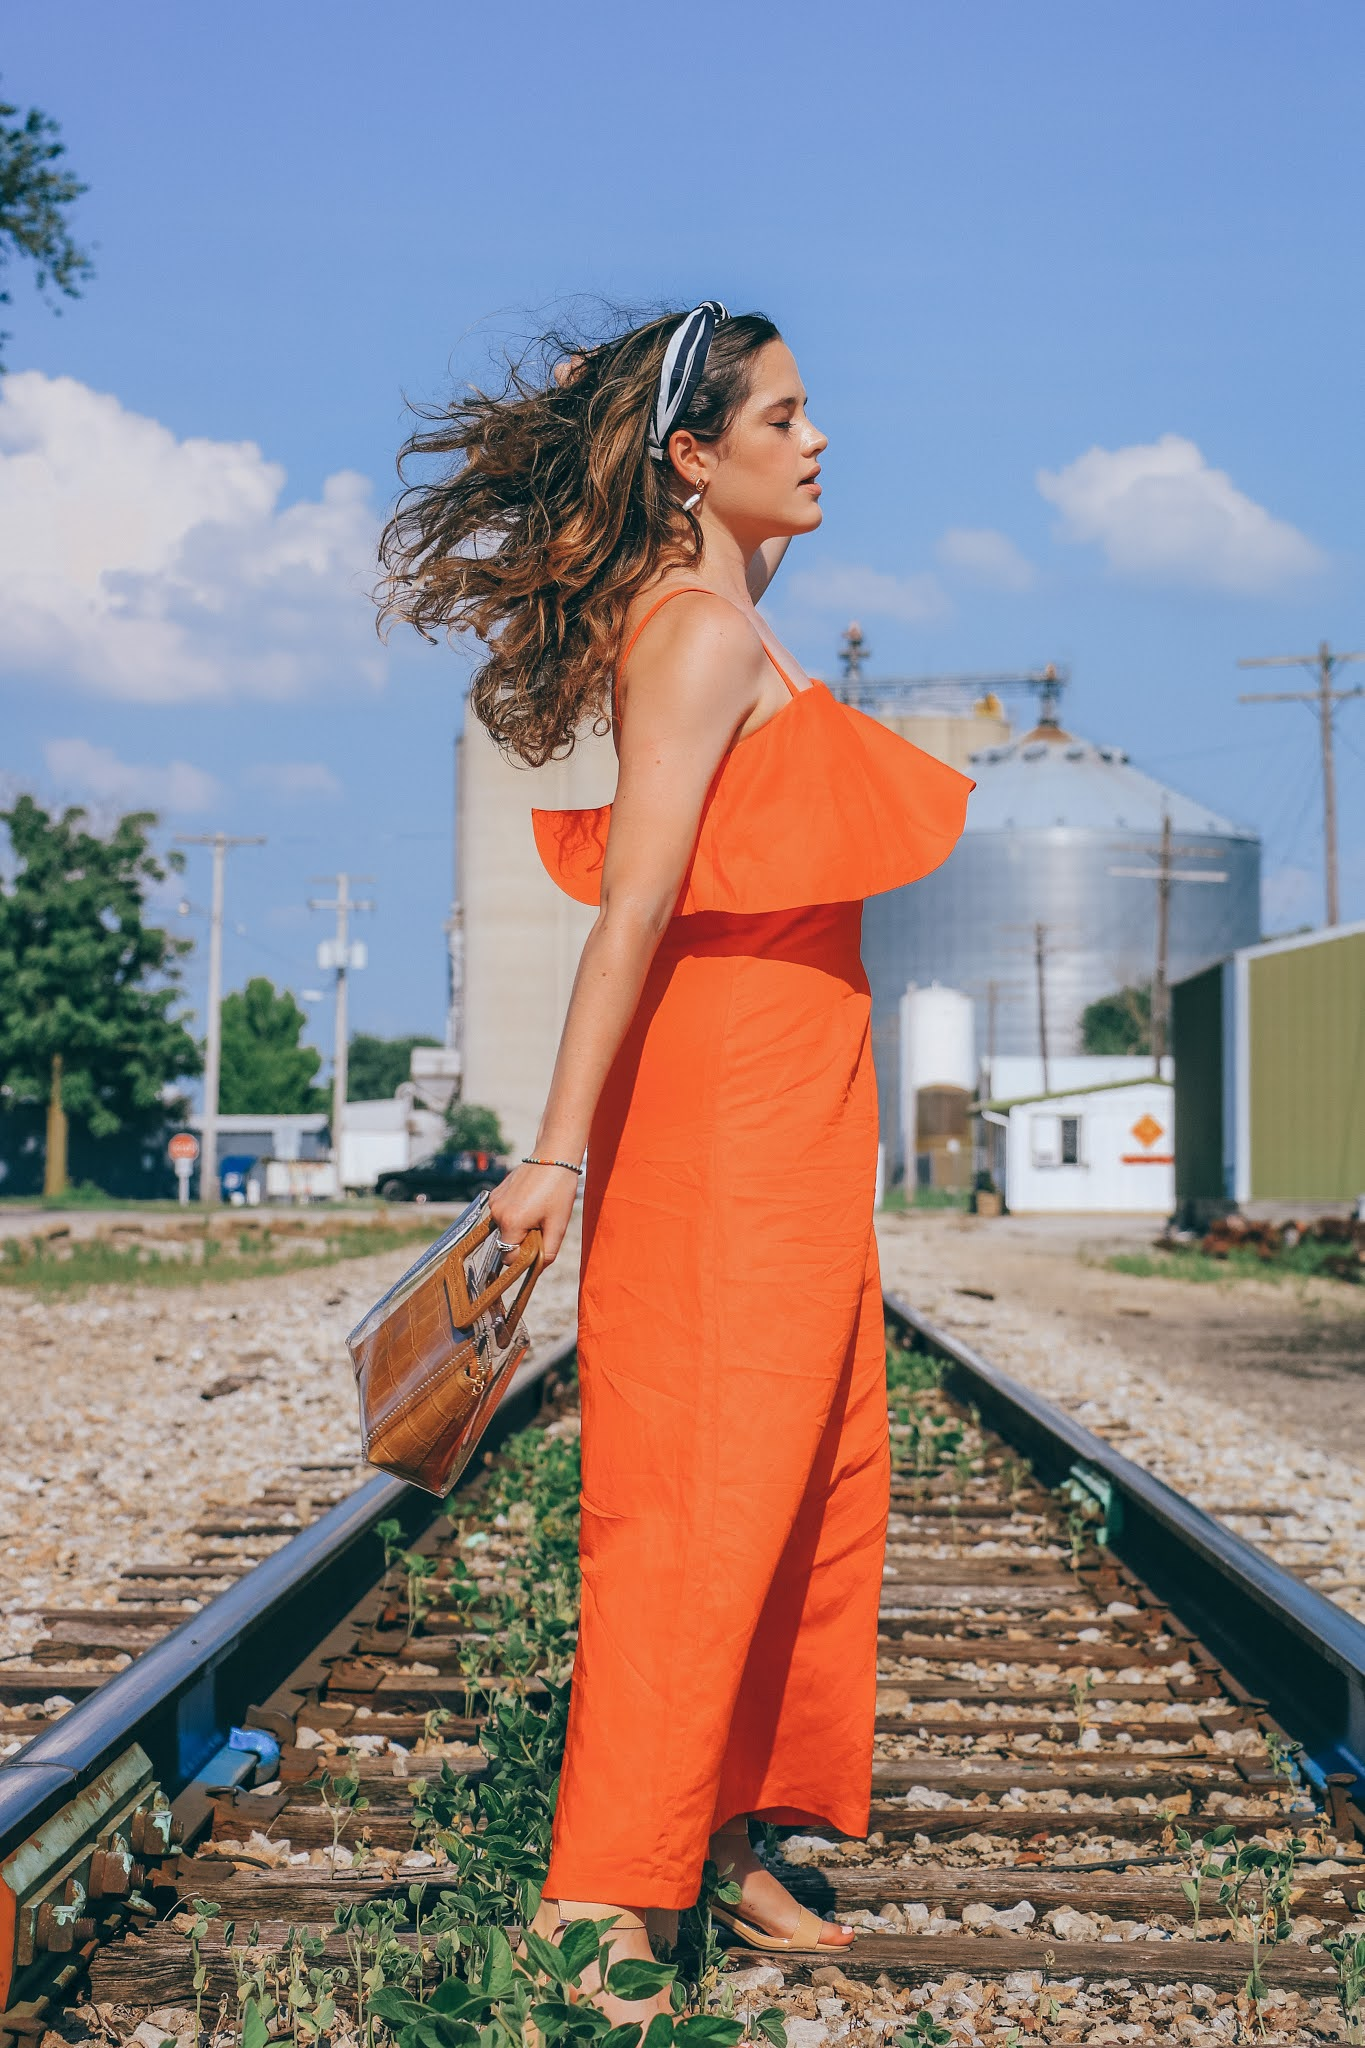 Fashion blogger Kathleen Harper wearing an orange summer maxi dress during an outdoor photo shoot.